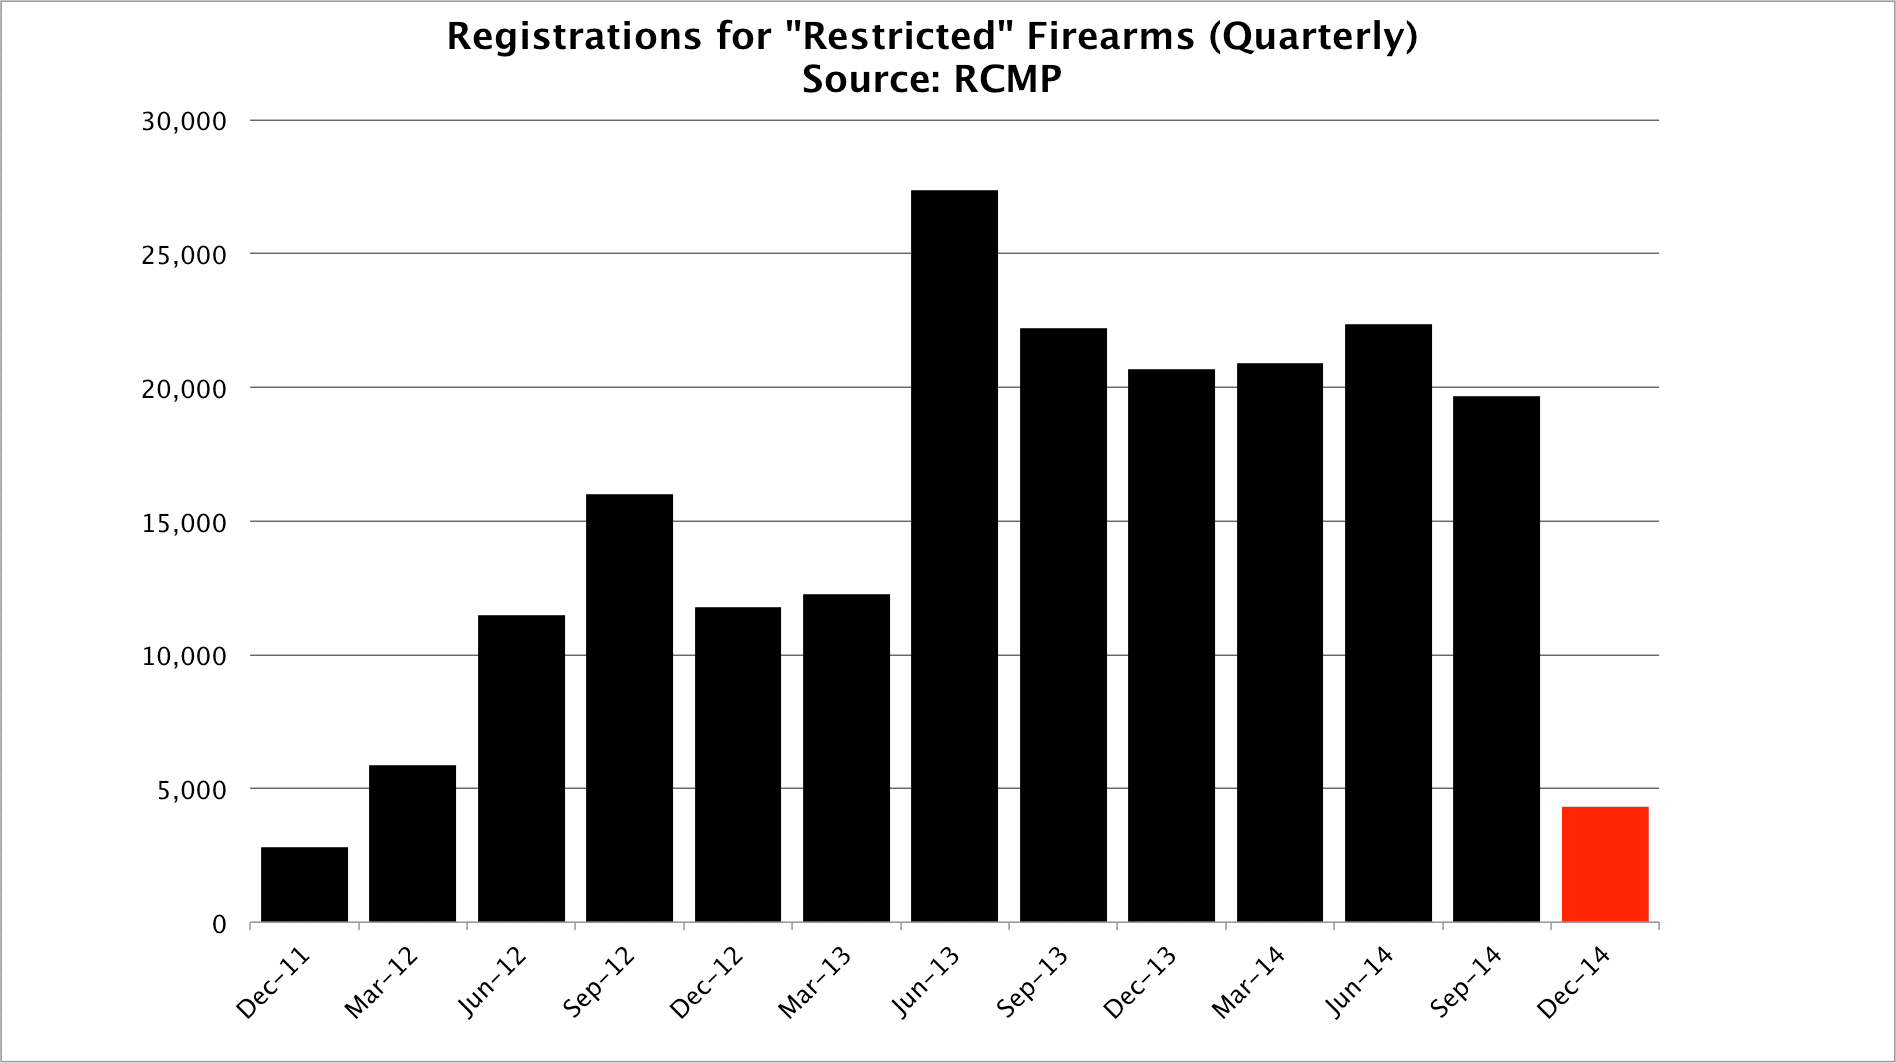 Registrations of Restricted Firearms Canada